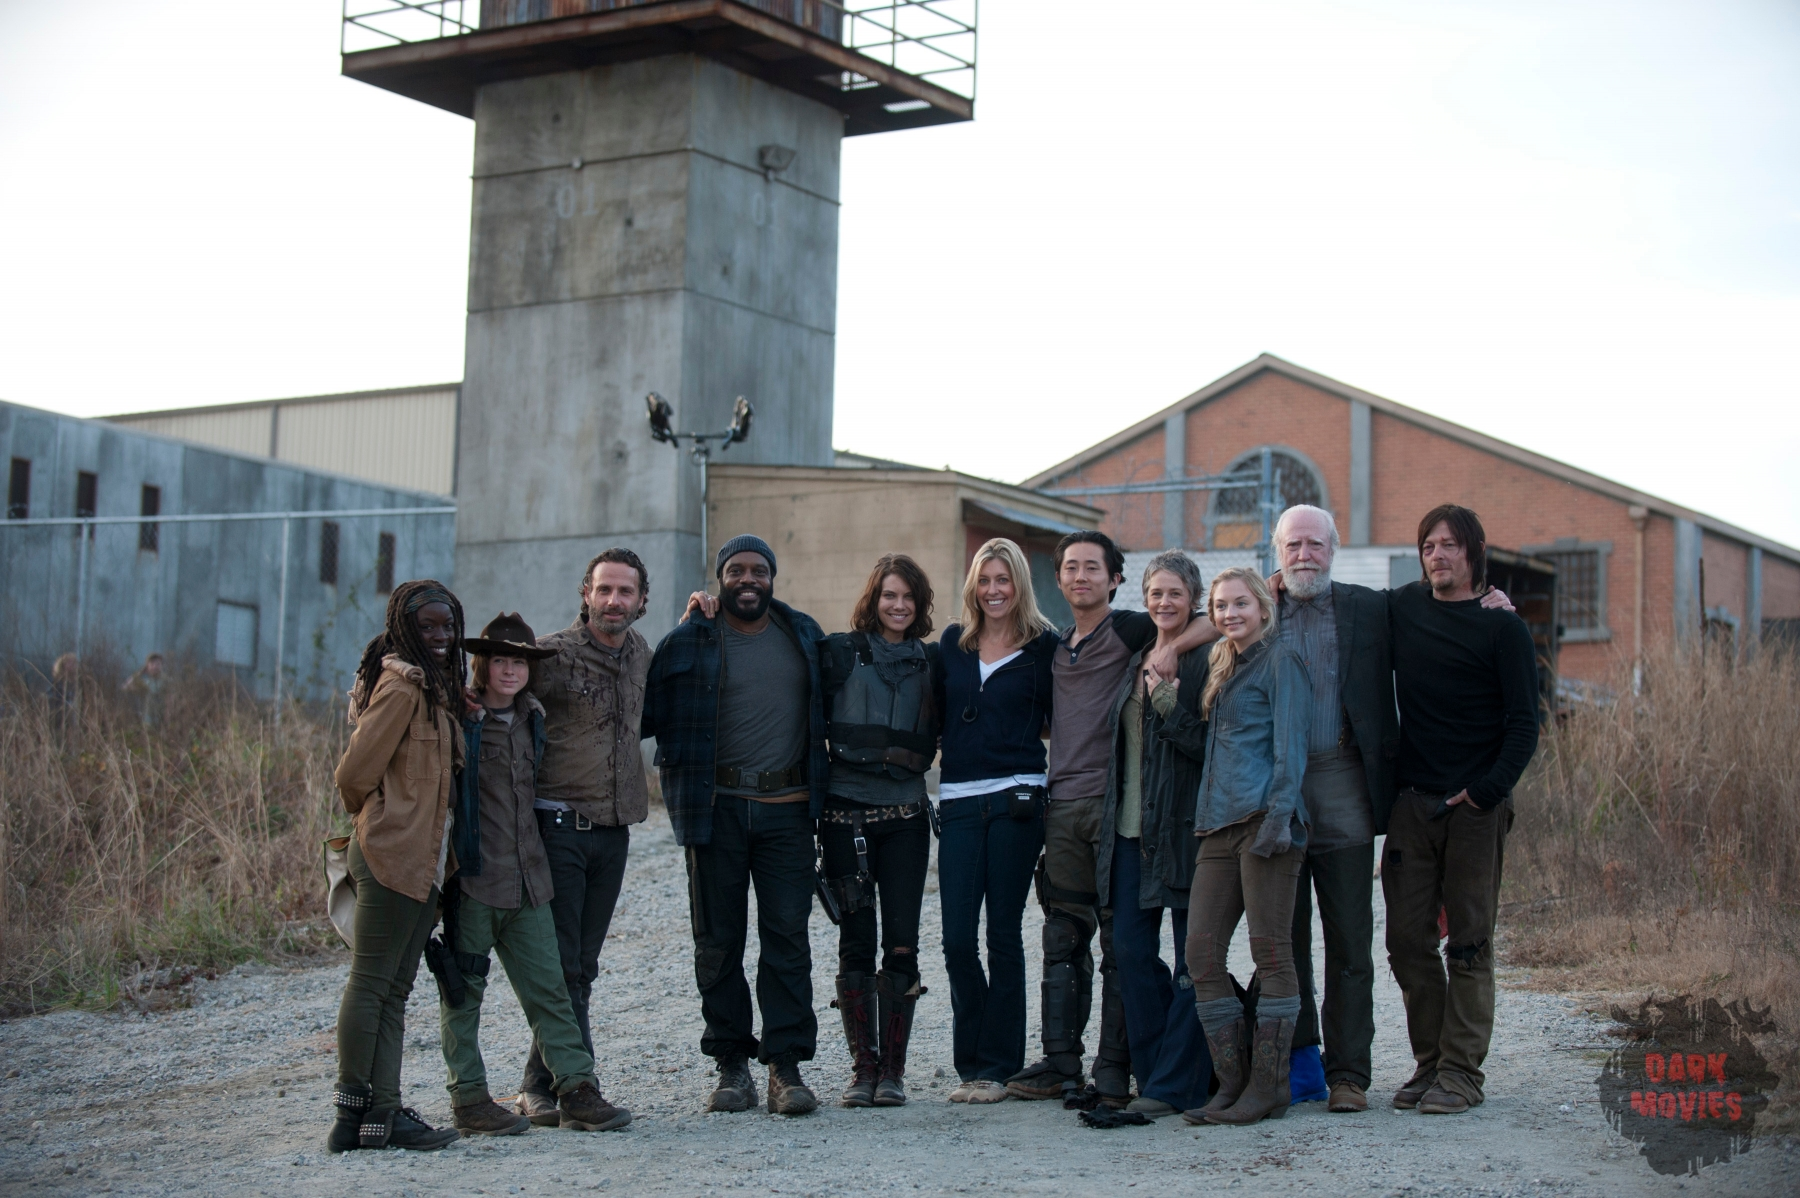 Danai Gurira, Chandler Riggs, Andrew Lincoln, Chad Coleman, Lauren Cohan, Denise Huth, Steven Yeun, Melissa Suzanne McBride, Emily Kinney, Scott Wilson and Norman Reedus - The Walking Dead _ BTS - Season 4, Episode 16 - Photo Credit: Gene Page/AMC